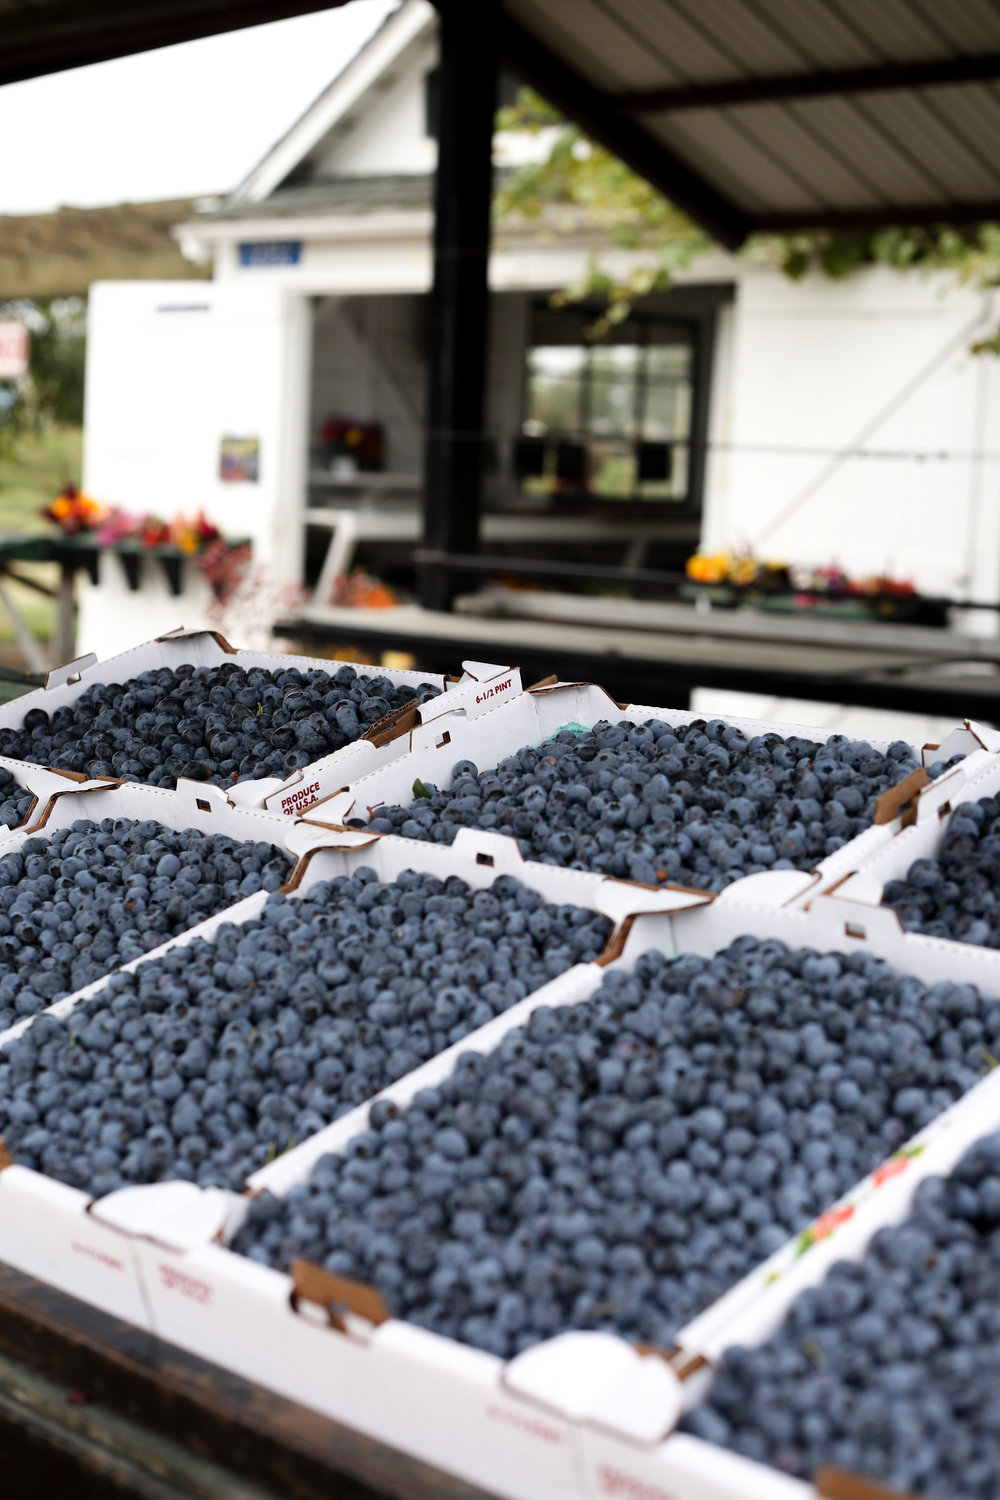 A look at some of Hedlin's freshly picked blueberries.